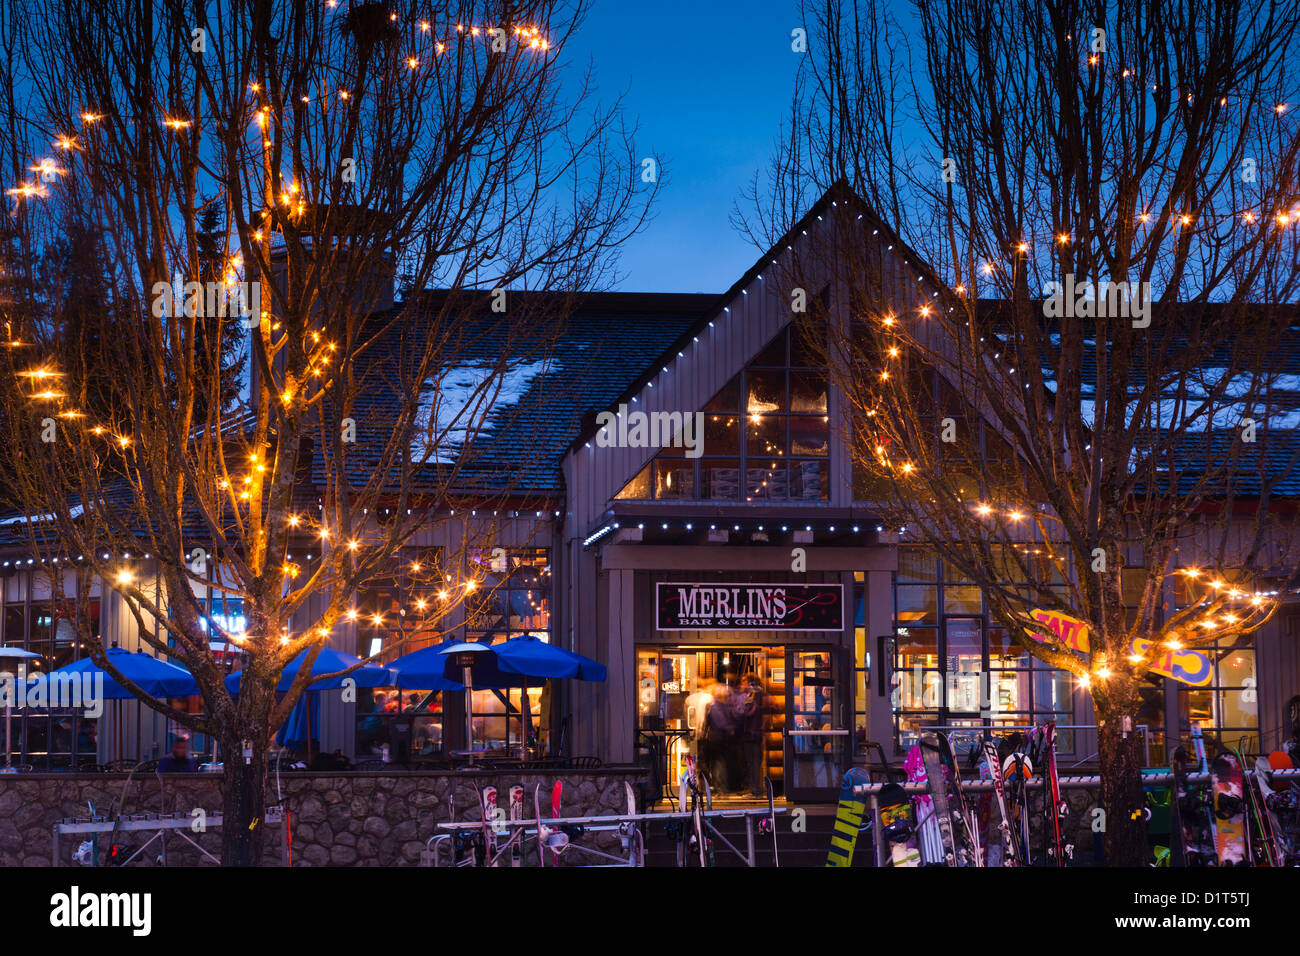 Night lights upper canada village - Canada British Columbia Whistler Blackcomb Upper Village Merlin S Bar Dusk